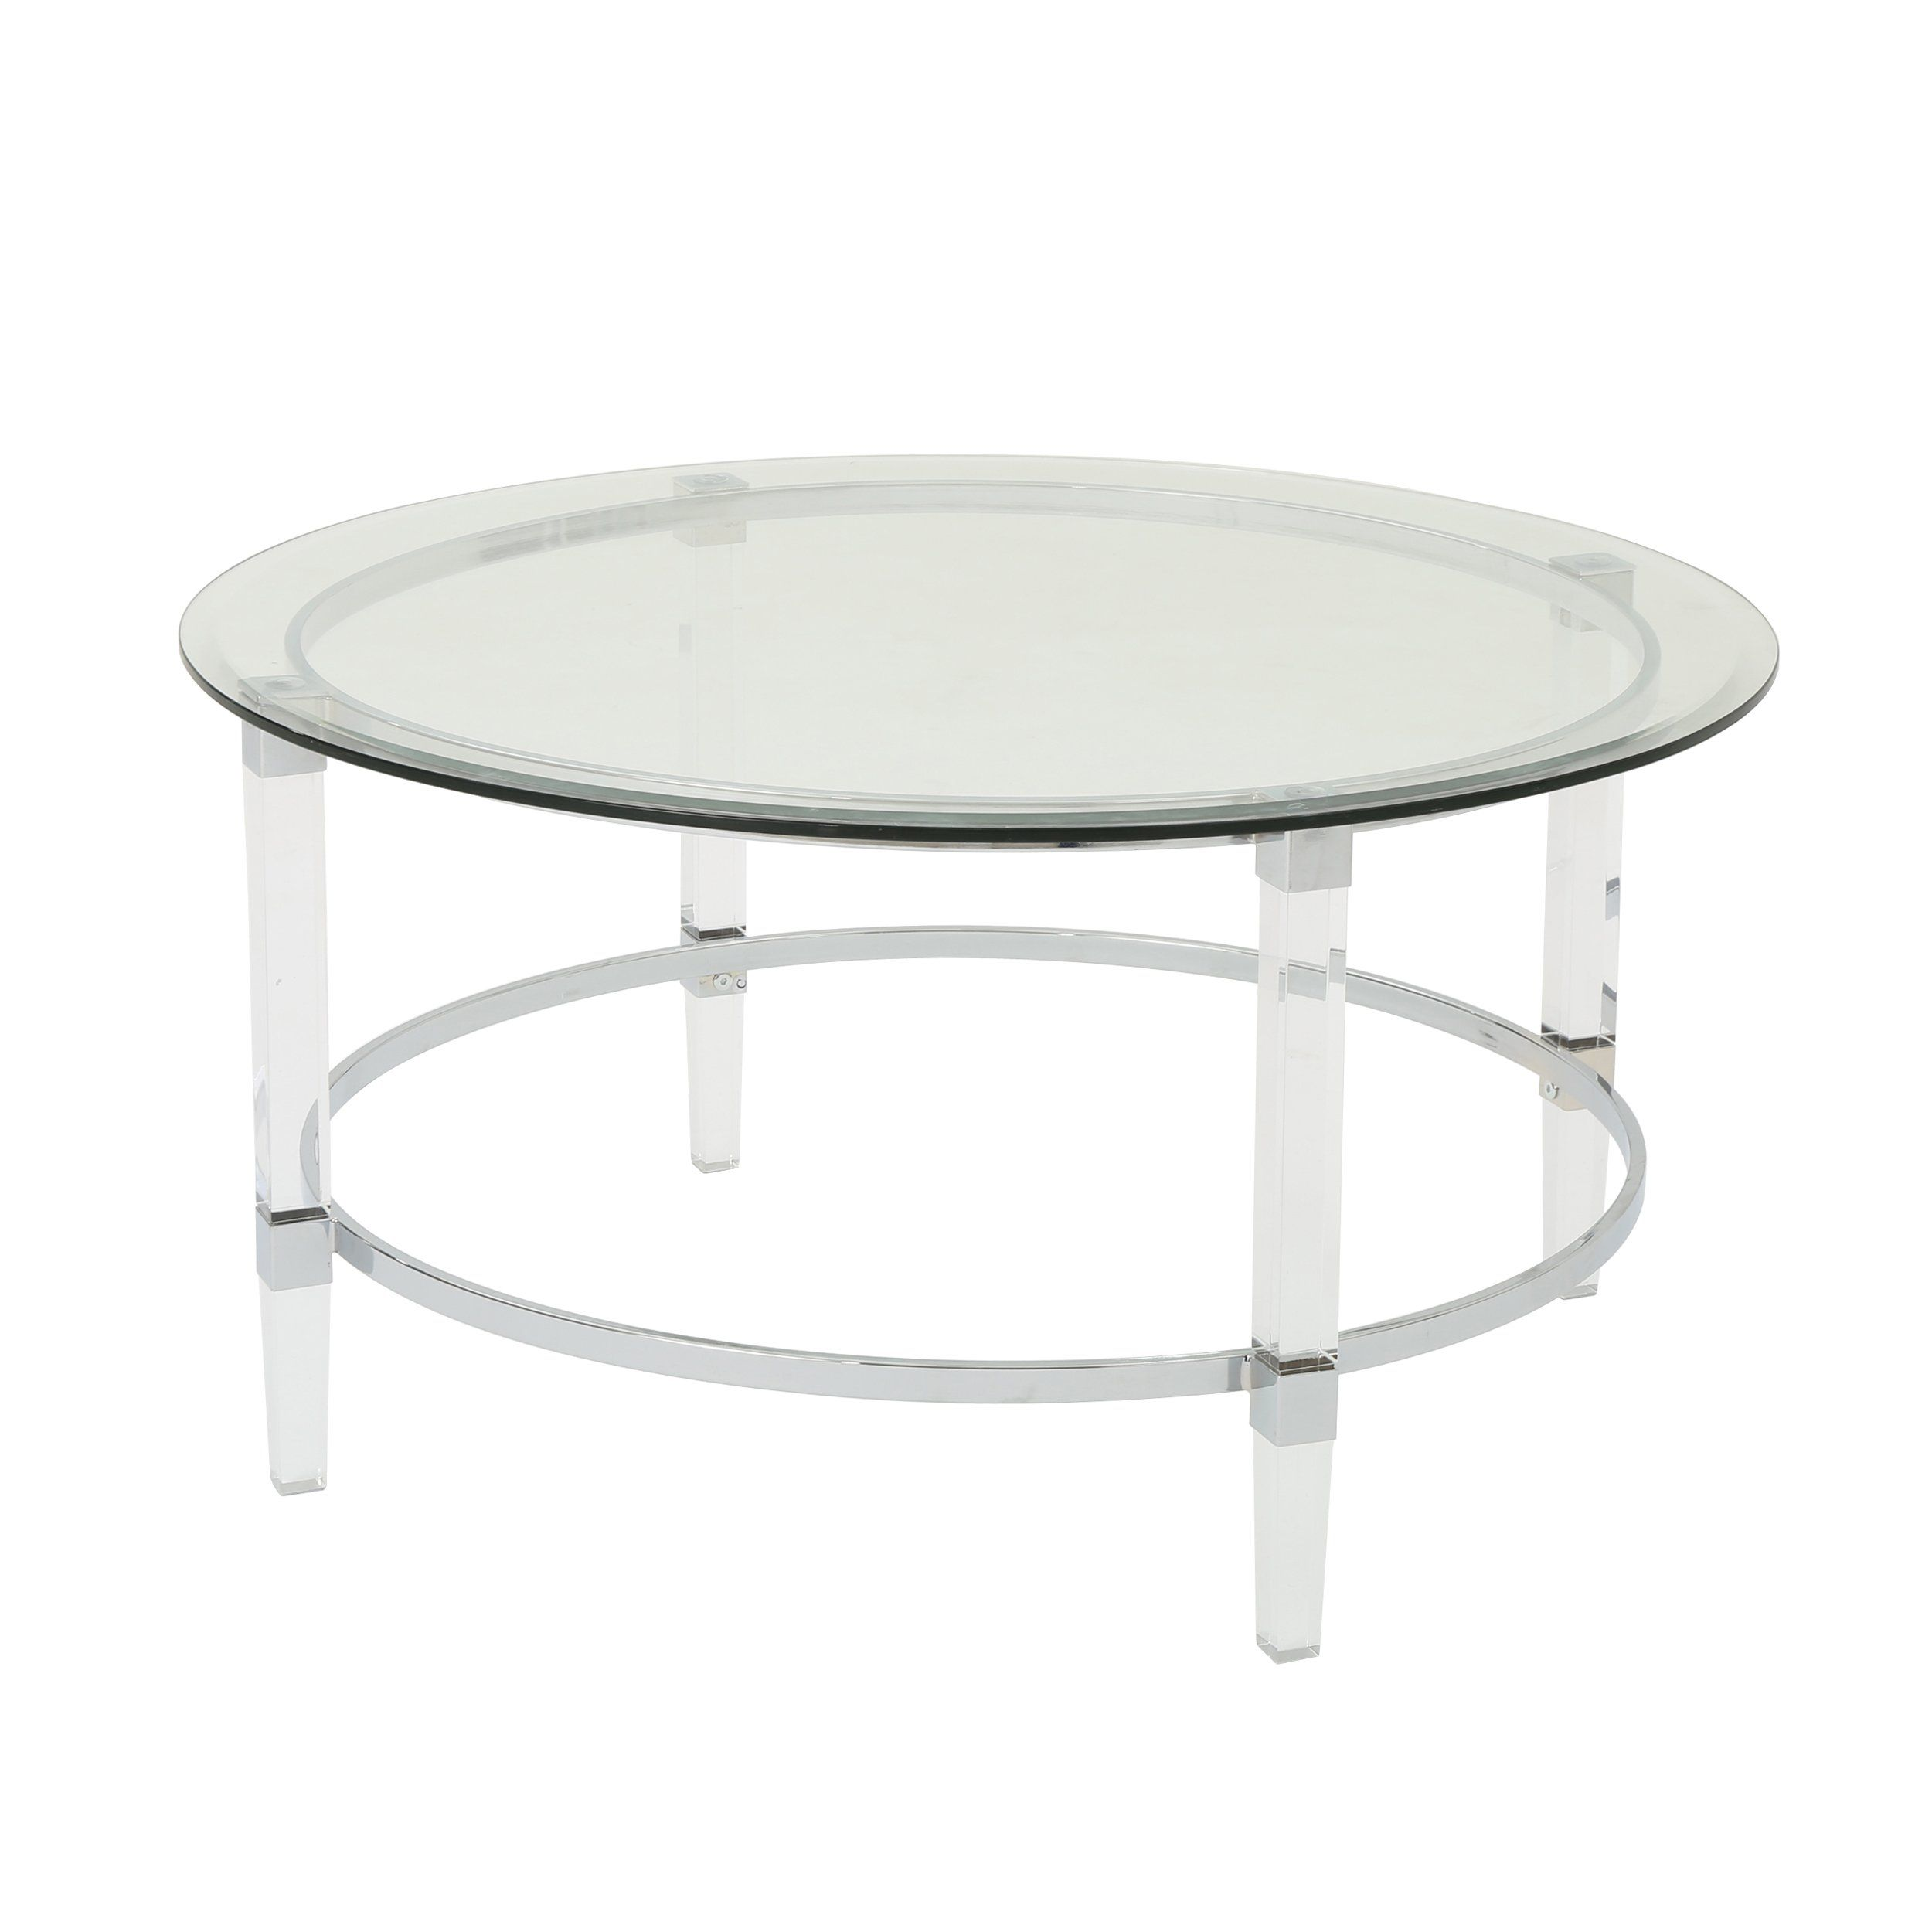 Lynn Modern Round Tempered Glass Coffee Table With Acrylic And Iron Accents In 2021 Coffee Table Round Glass Coffee Table Acrylic Coffee Table [ 2500 x 2500 Pixel ]